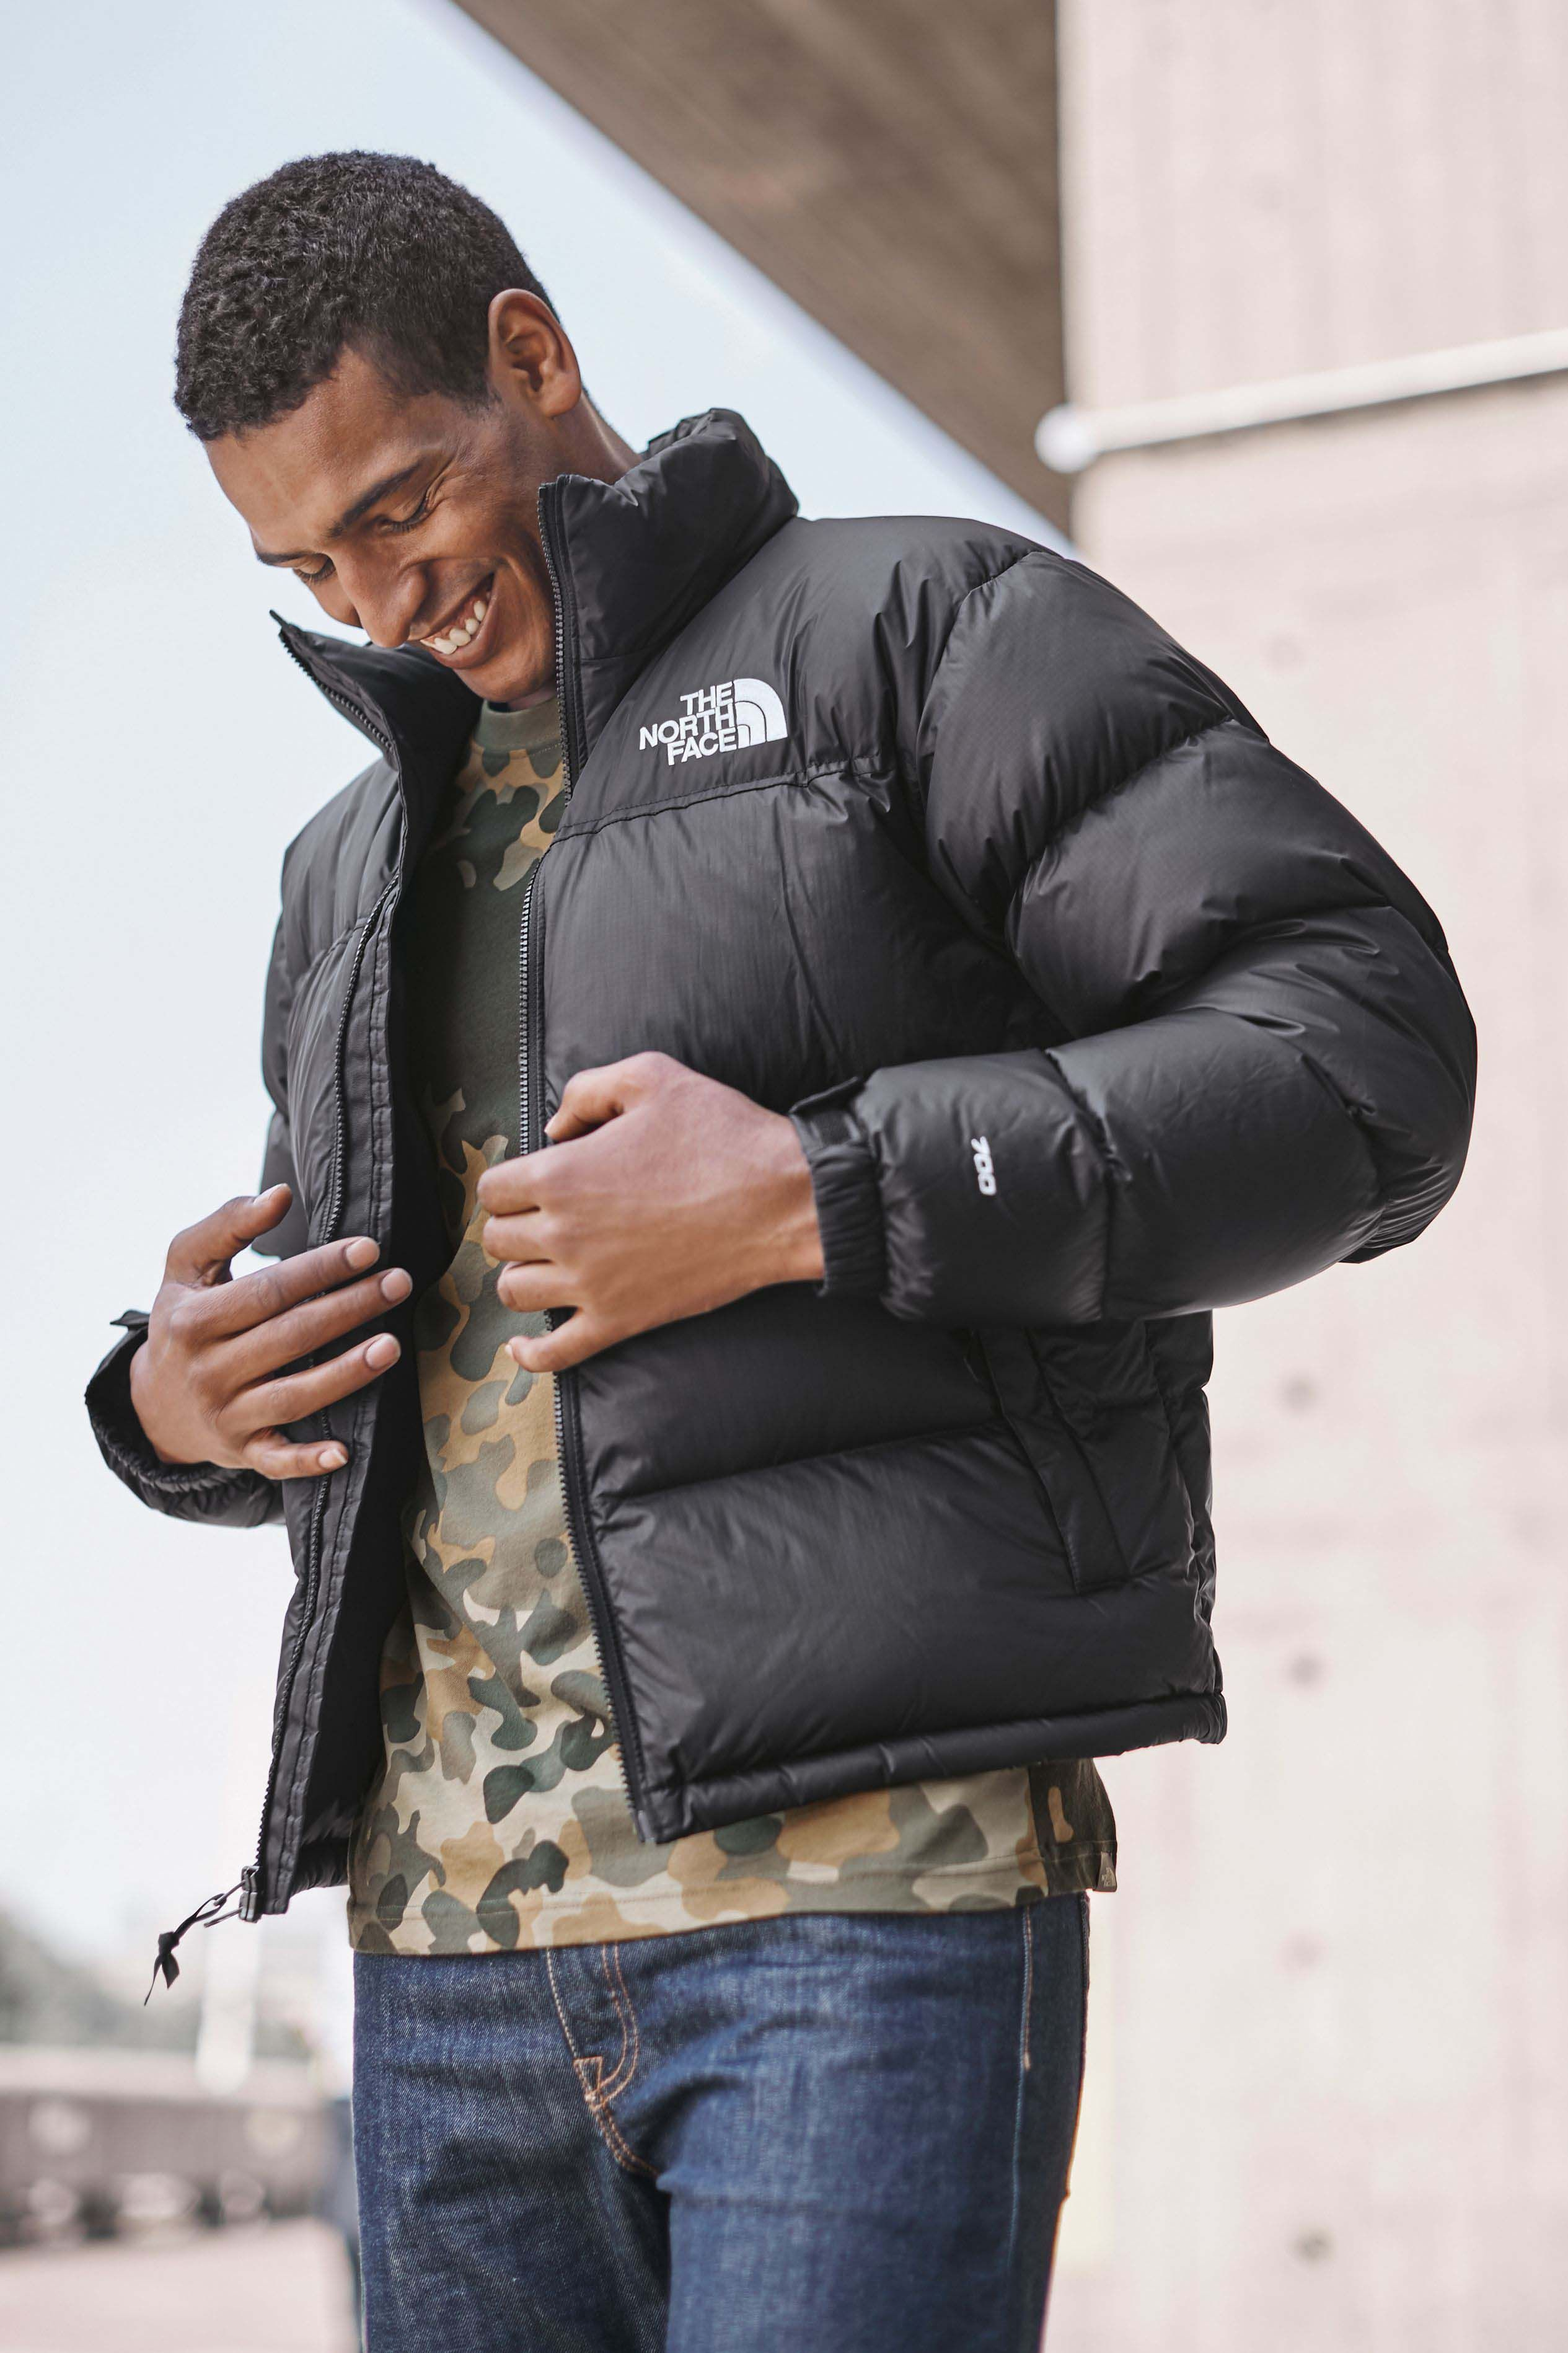 dcc0e1c99 Mens The North Face 1996 Nuptse Jacket - Black in 2019 | Products ...